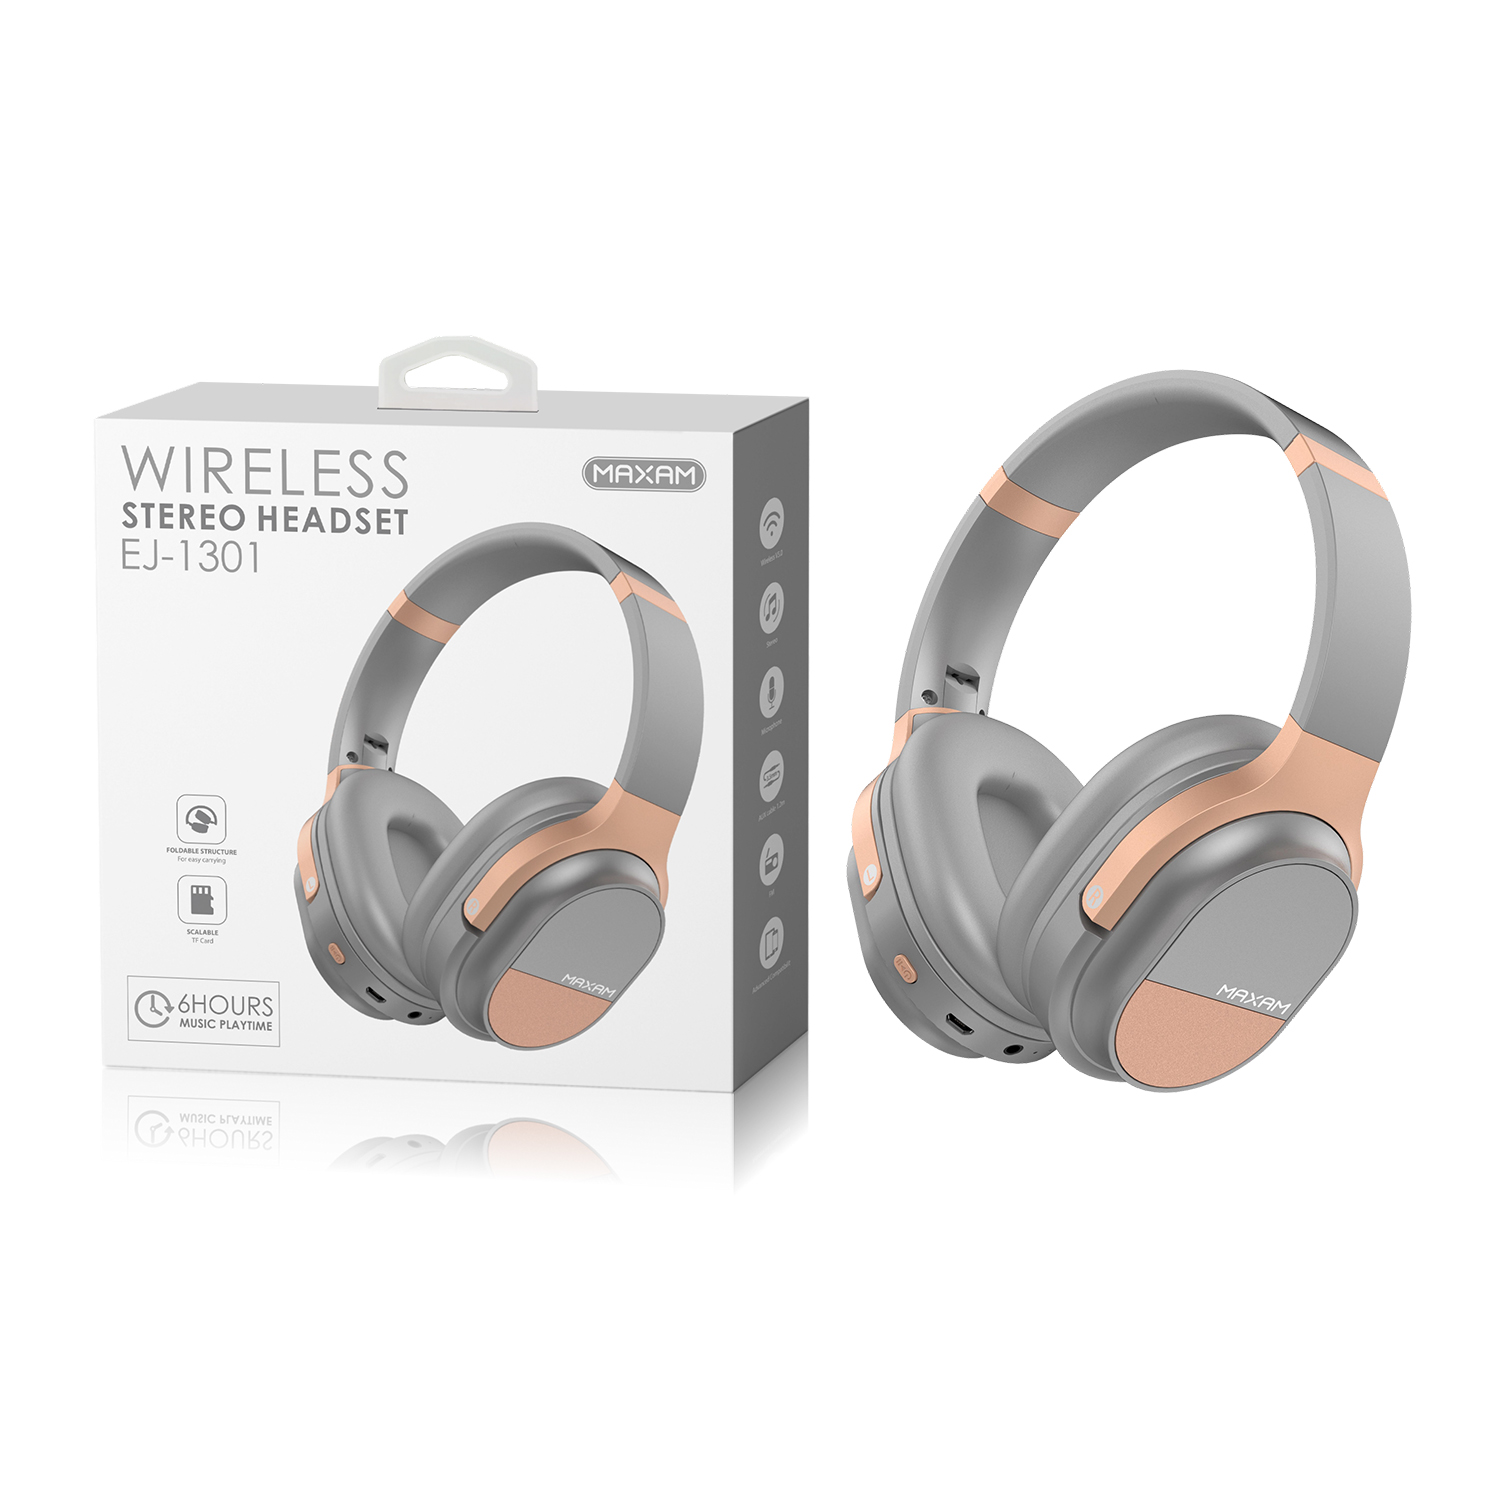 EJ-1301Gold Wireless stereo